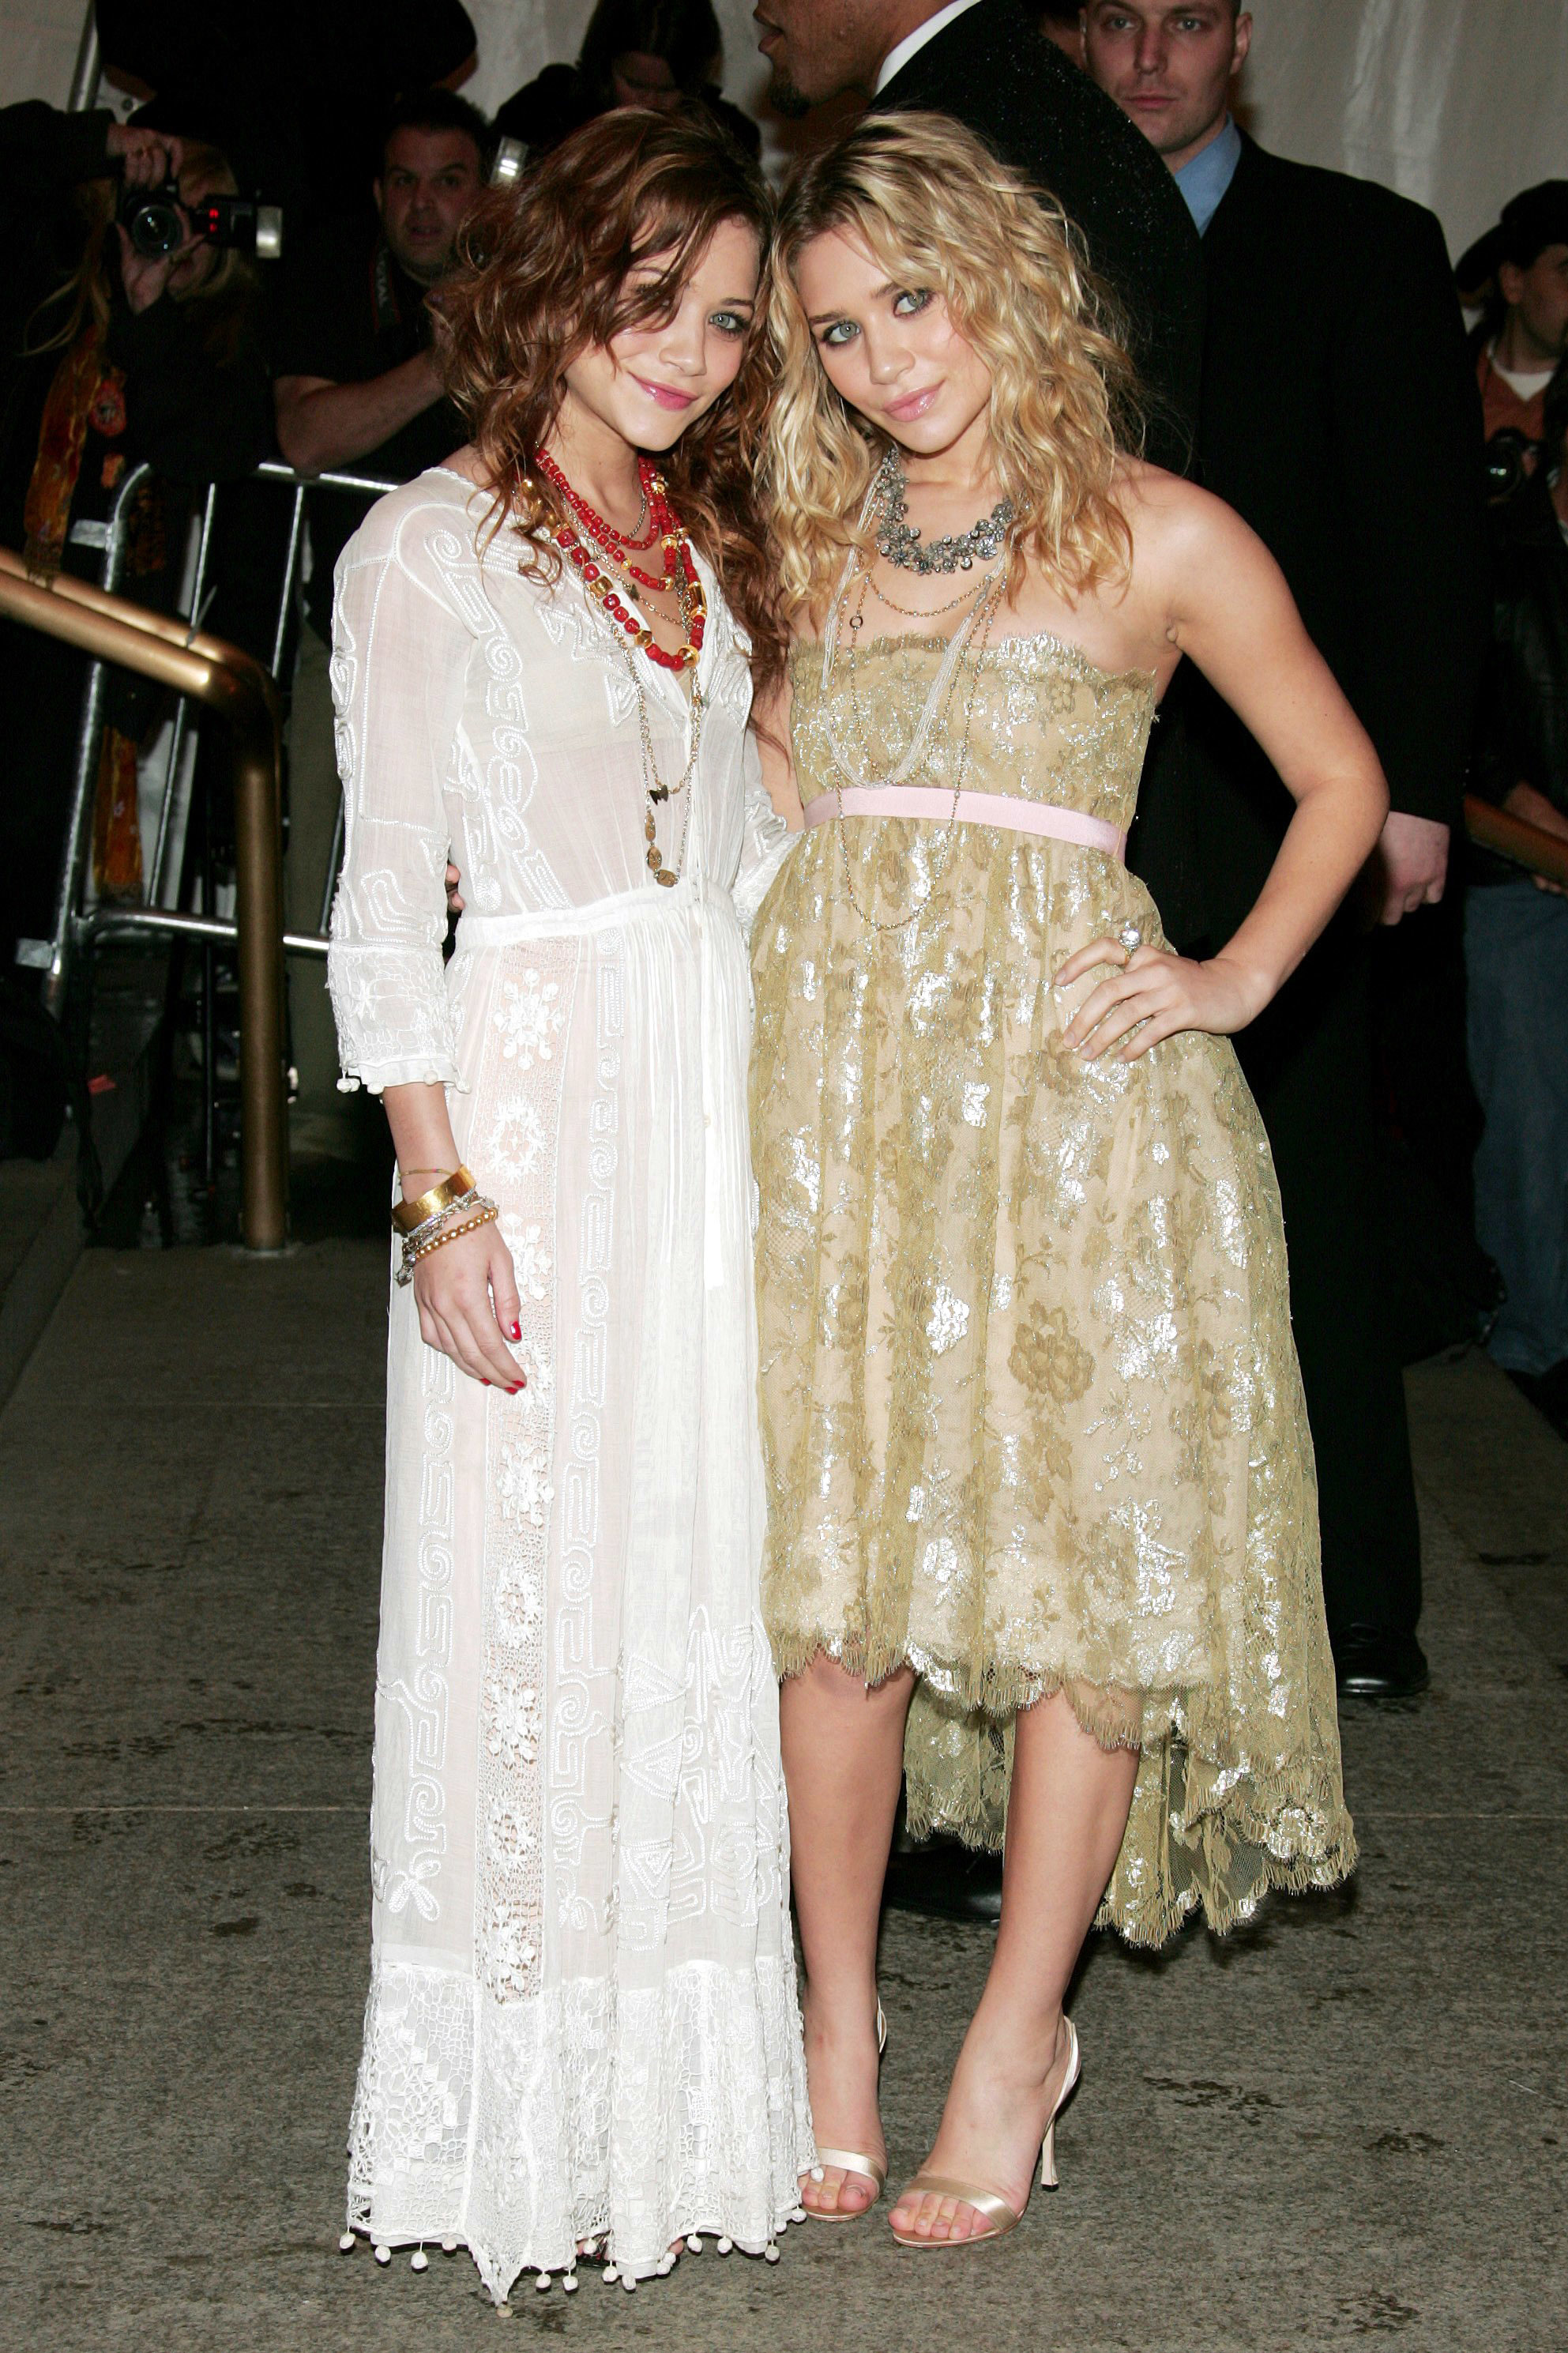 """Mary Kate Olsen and Ashley Olsen attend """"The House of Chanel"""" Costume Institute Gala at the Metropolitan Museum of Art in New York City on May 2, 2005."""